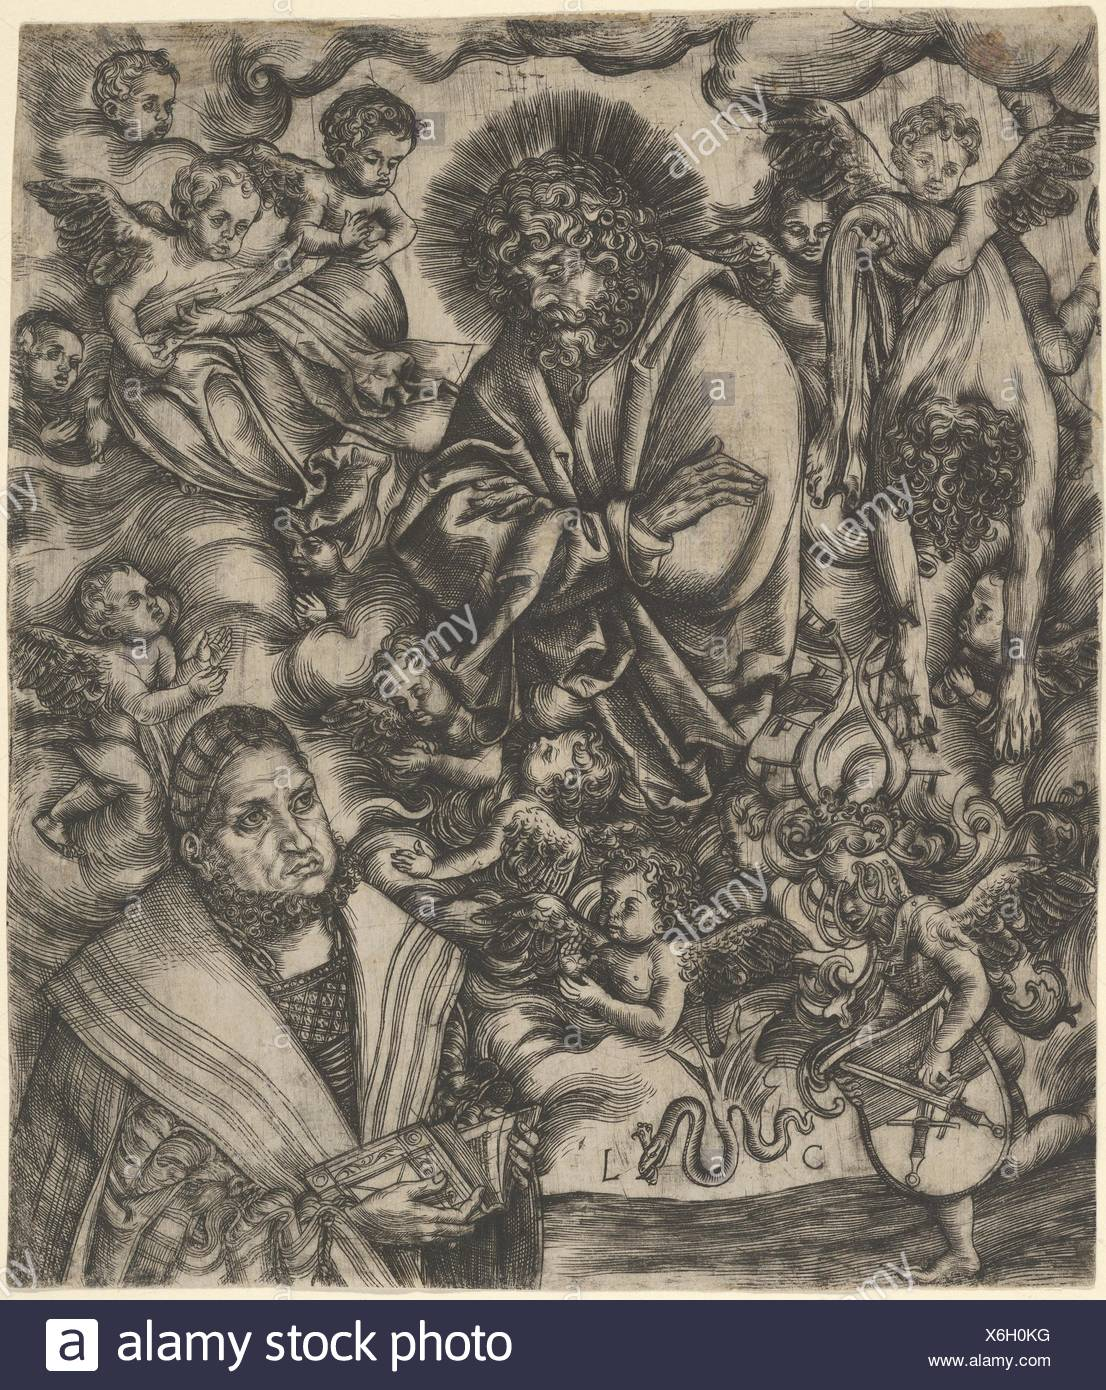 Frederick the Wise of Saxony Adoring St Bartholomew. Artist: Lucas Cranach the Elder (German, Kronach 1472-1553 Weimar); Date: ca. 1508-9; Medium: - Stock Image